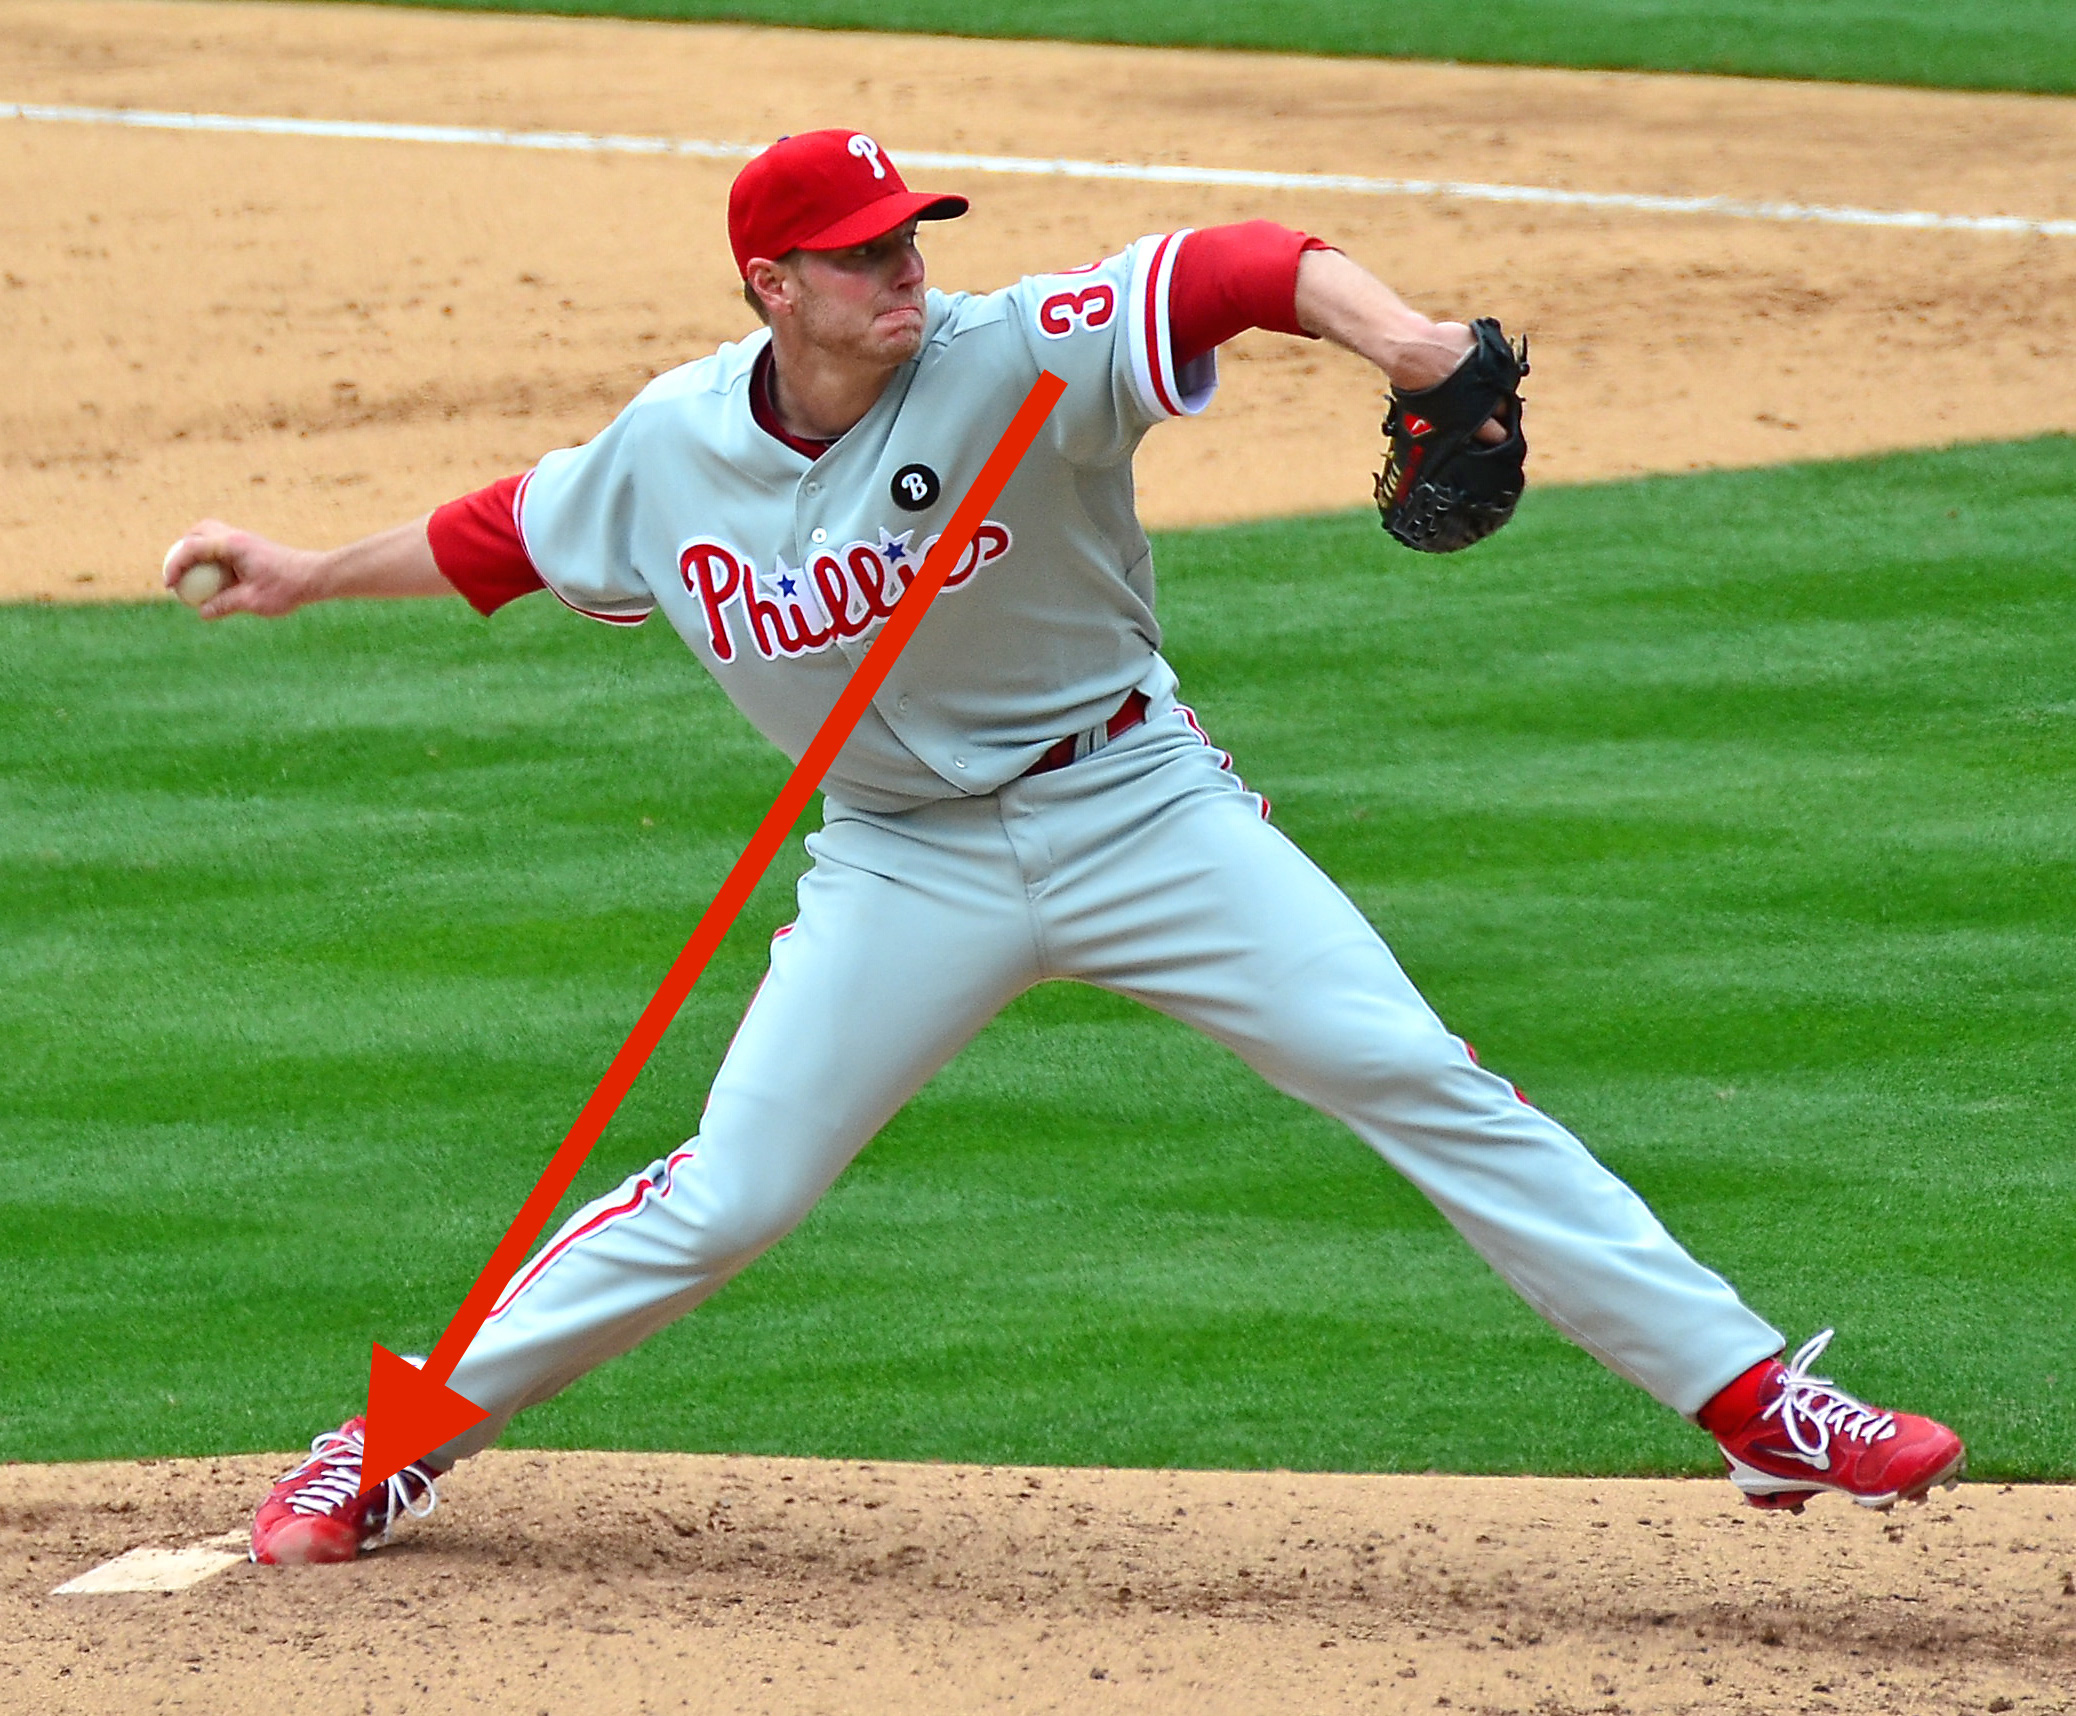 Roy_Halladay  Can Ground Force Give Your Swing More Power? Roy Halladay